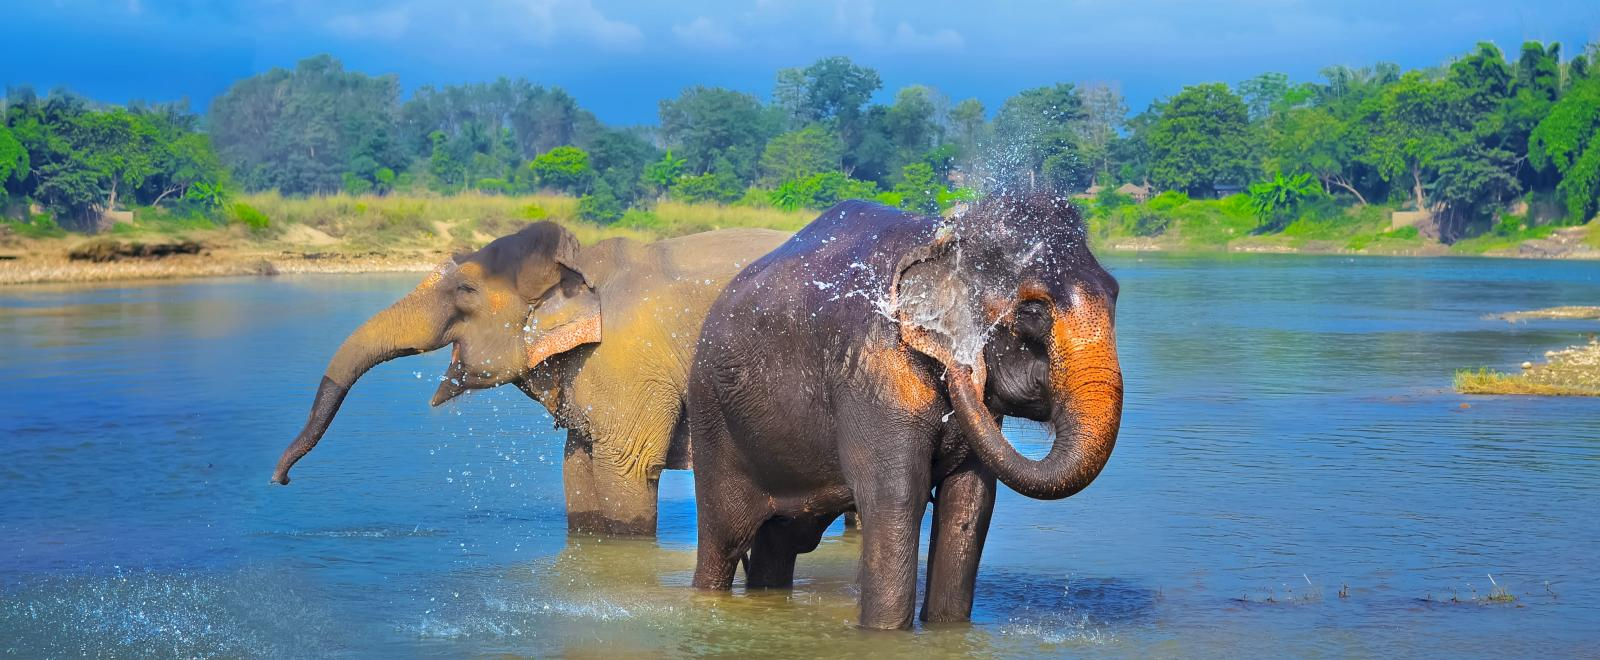 Asian elephants play in the water of a National Park in Sri Lanka.